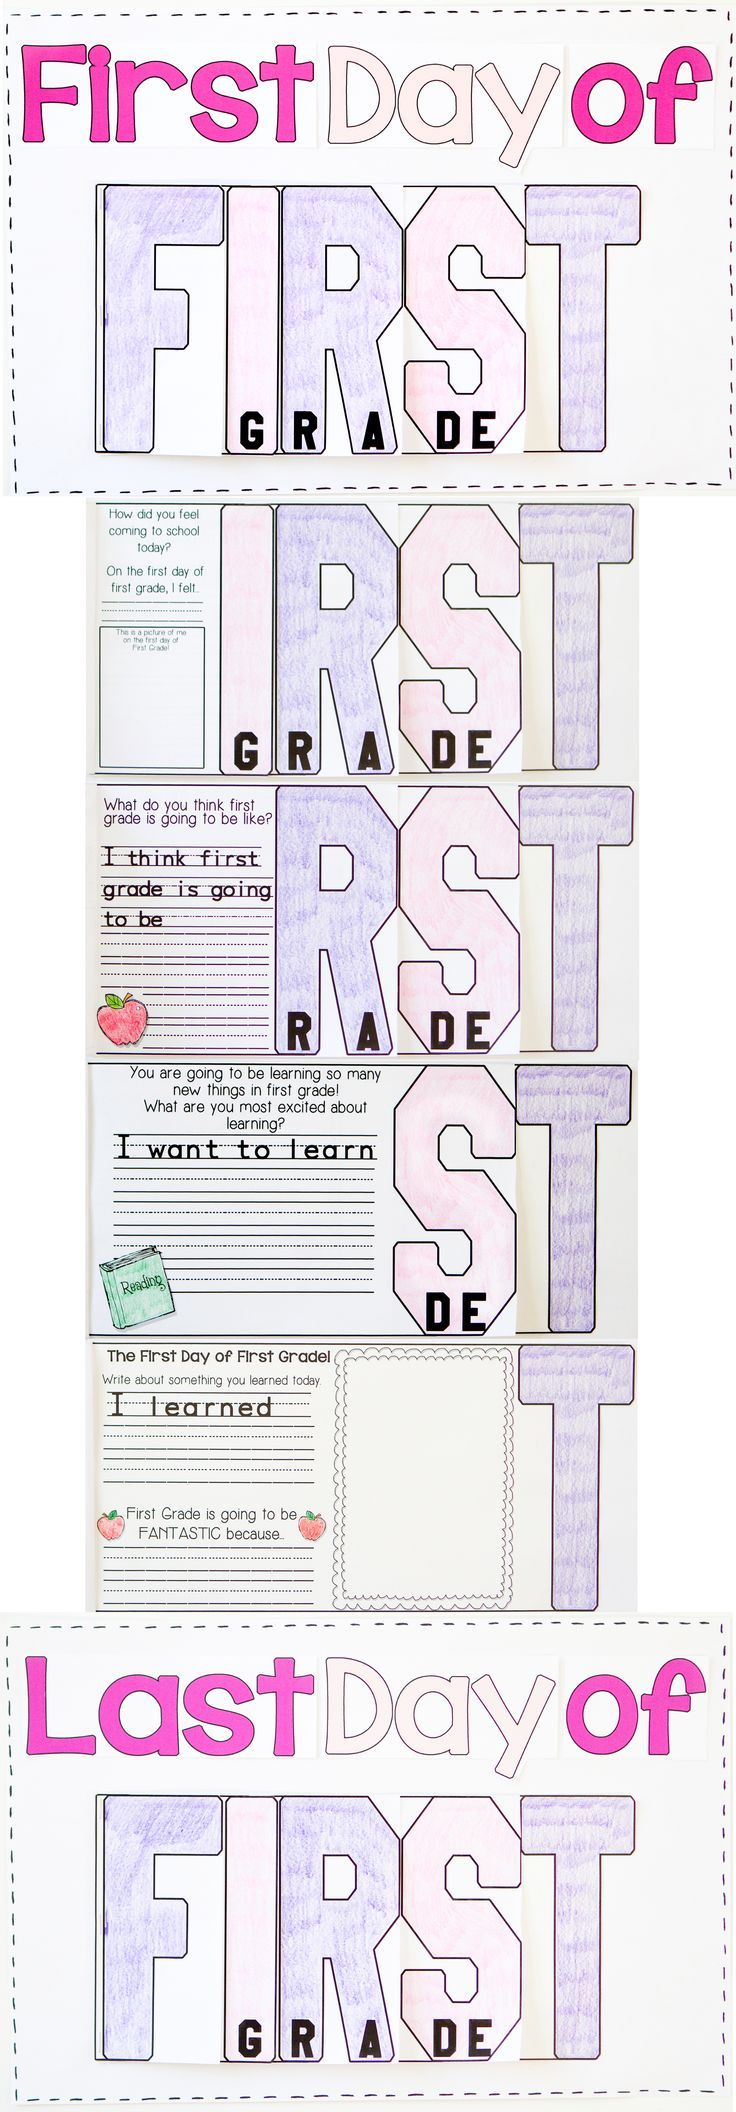 The Beginning and End of the Year Writing resource will be a wonderful keepsake for parents to see how their child has grown over the school year!